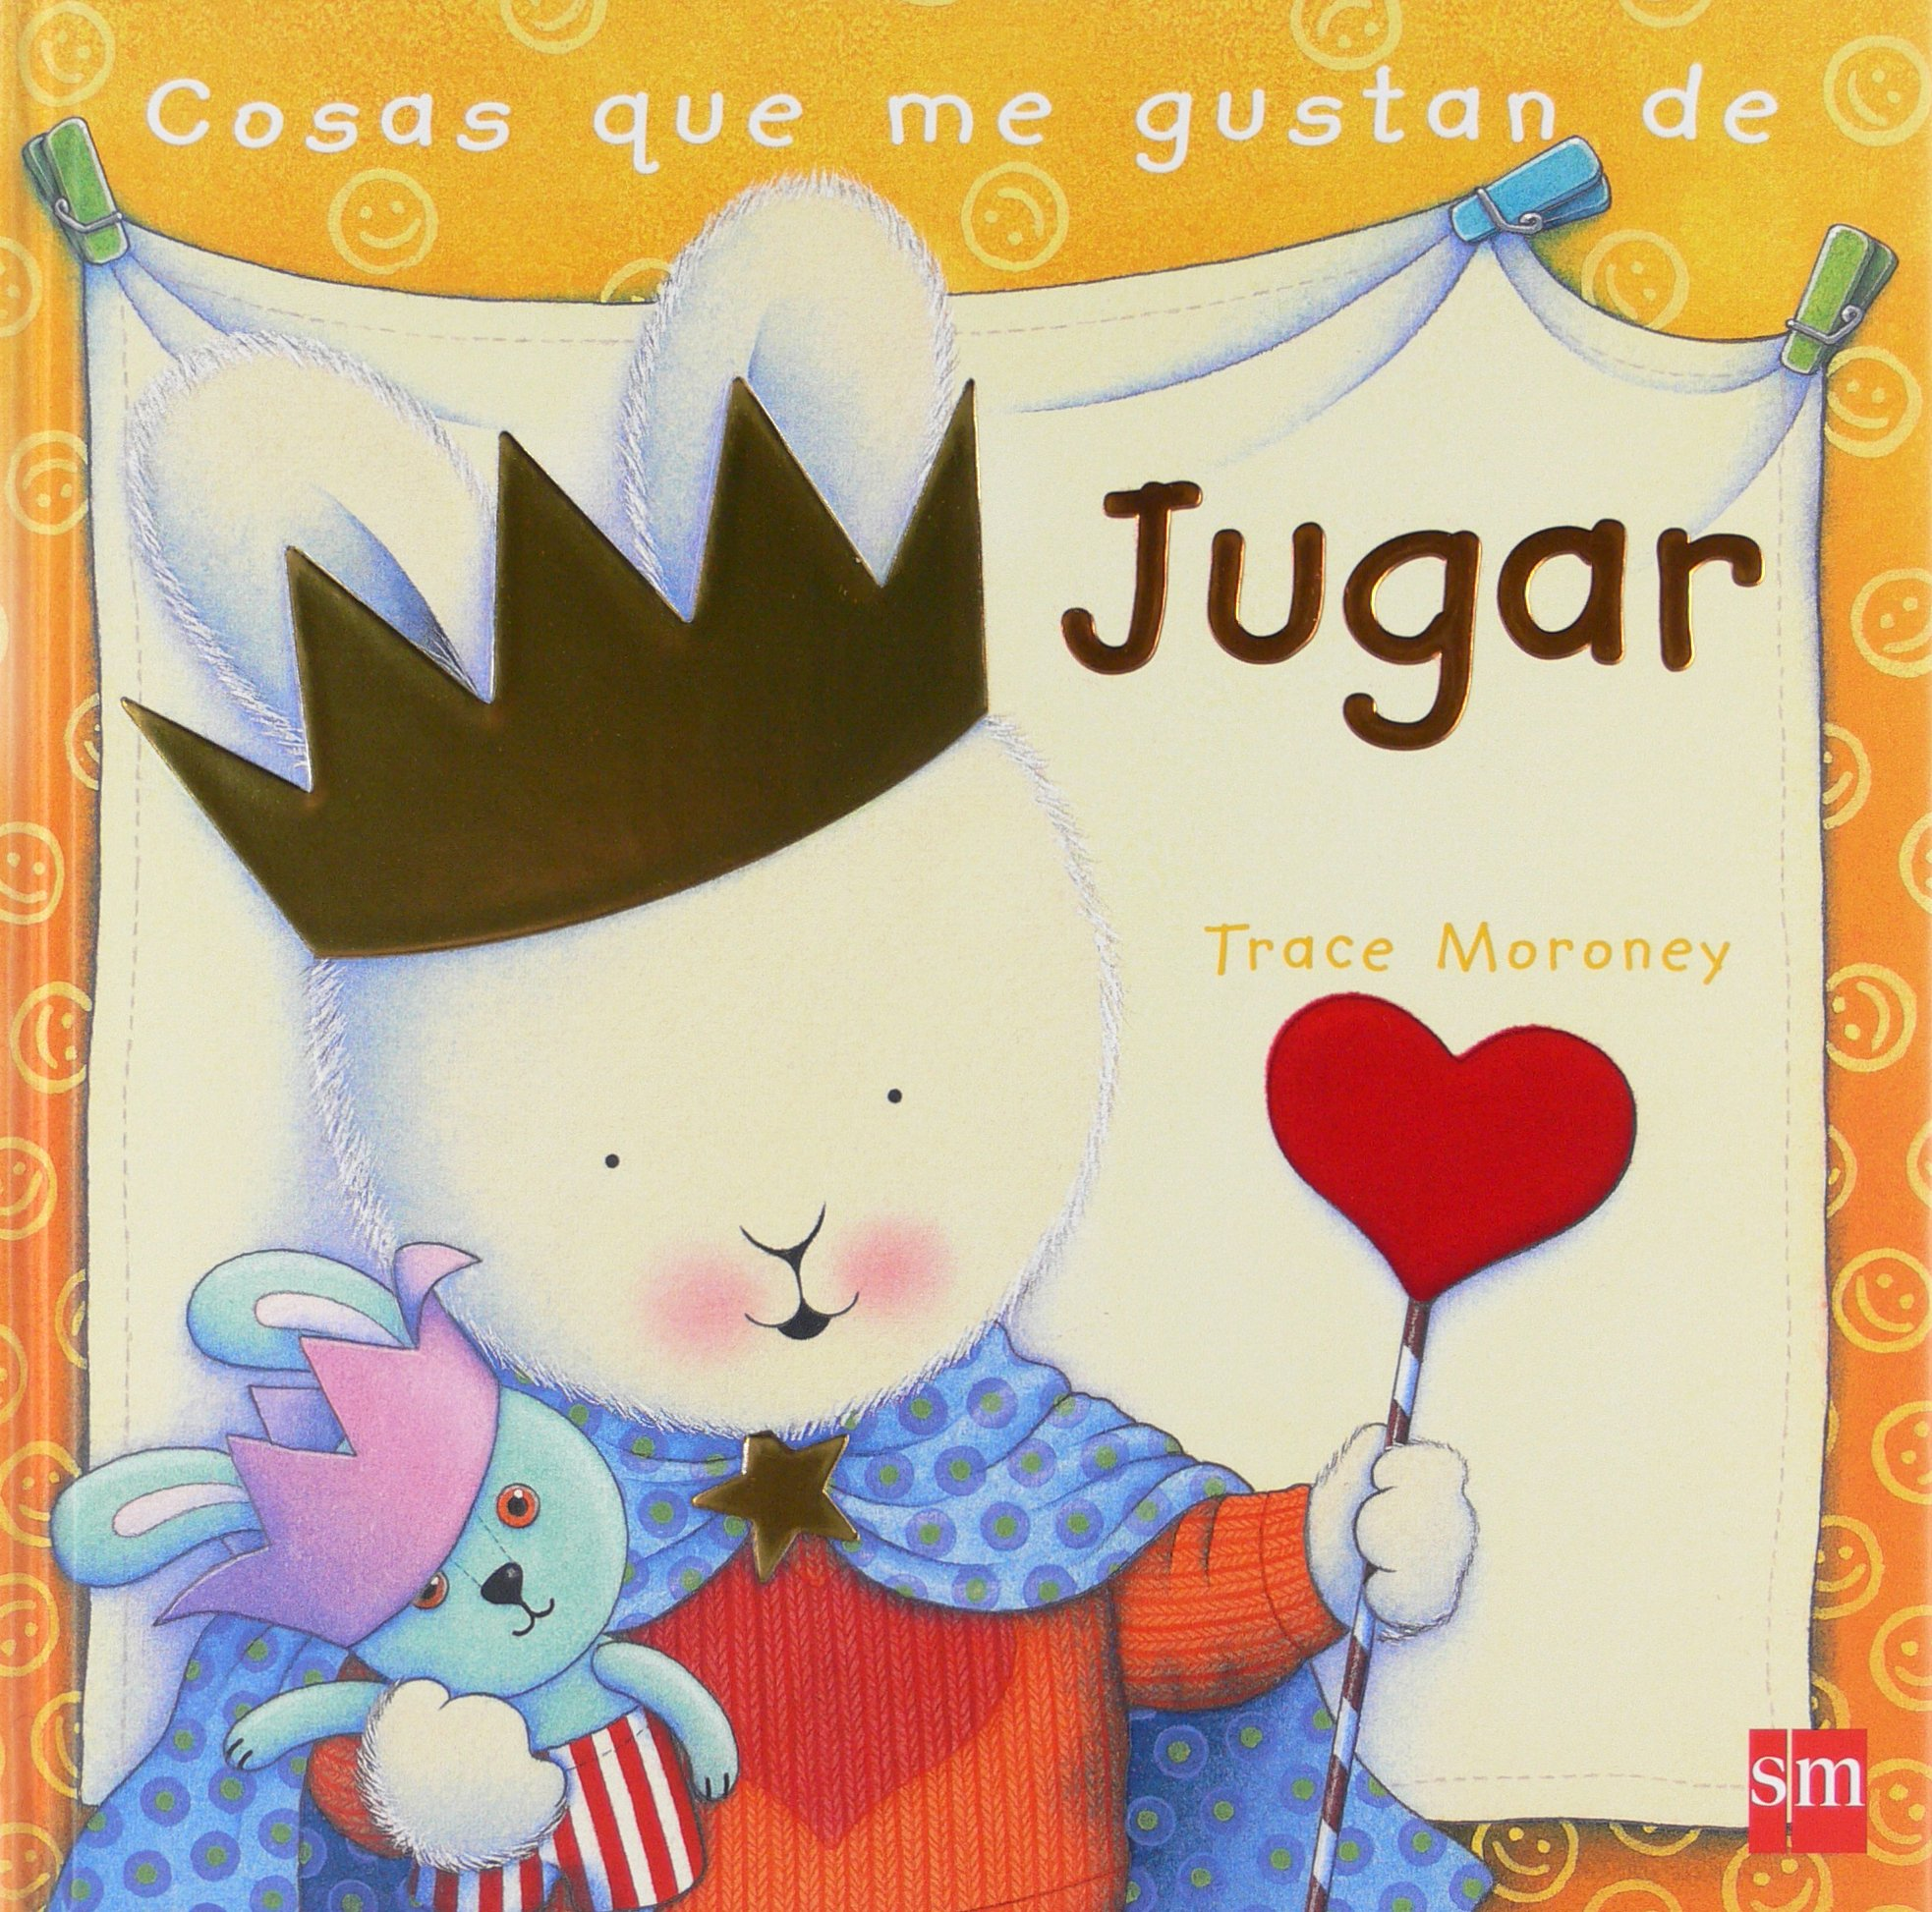 Download Cosas que me gustan de jugar / The Things I Love About Playtime (Spanish Edition) pdf epub